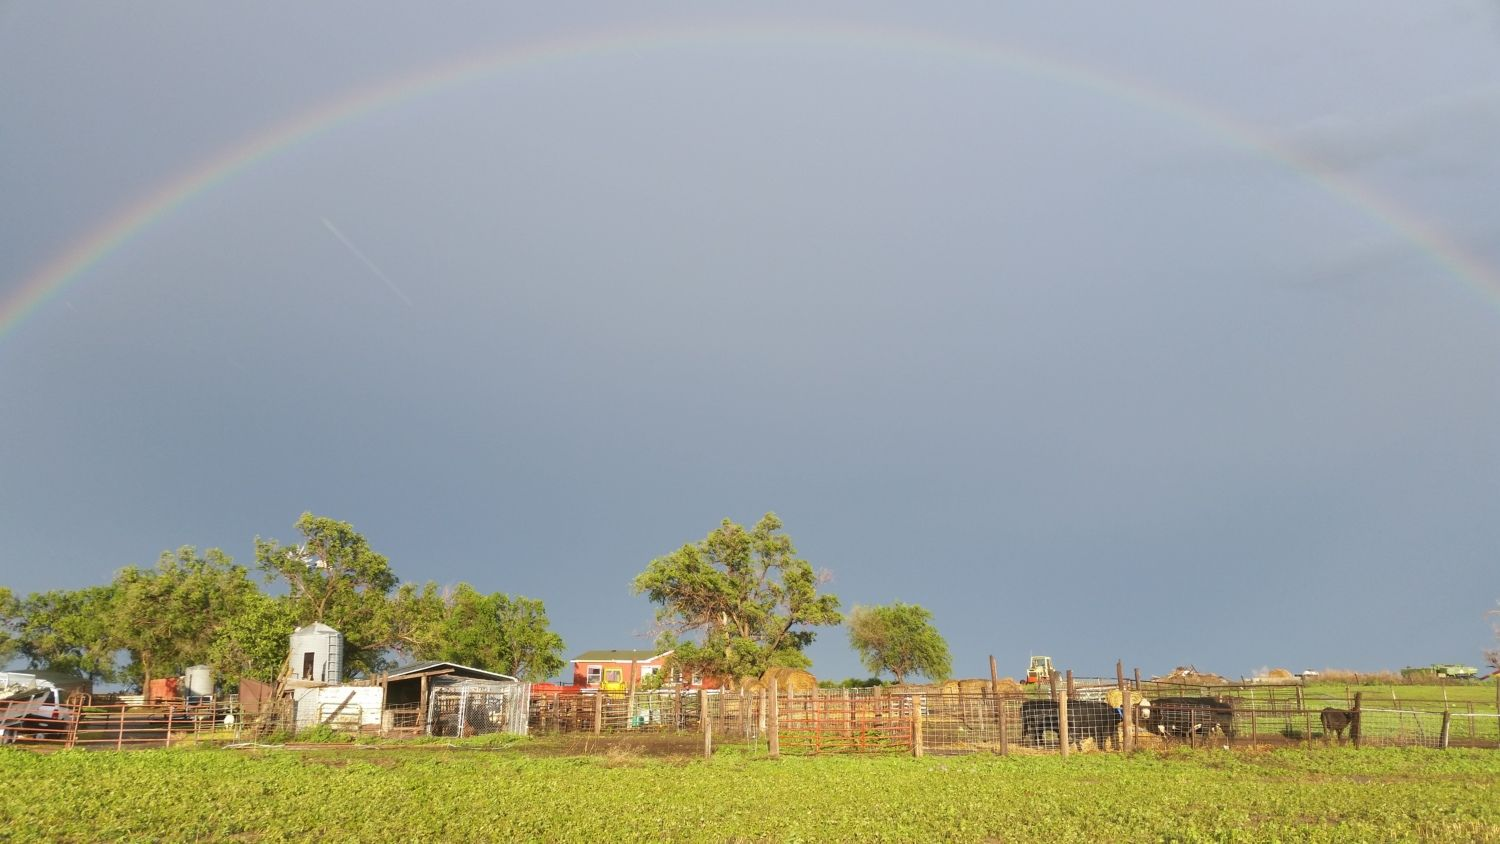 Picture of a rainbow over the farmstead after a late May storm.